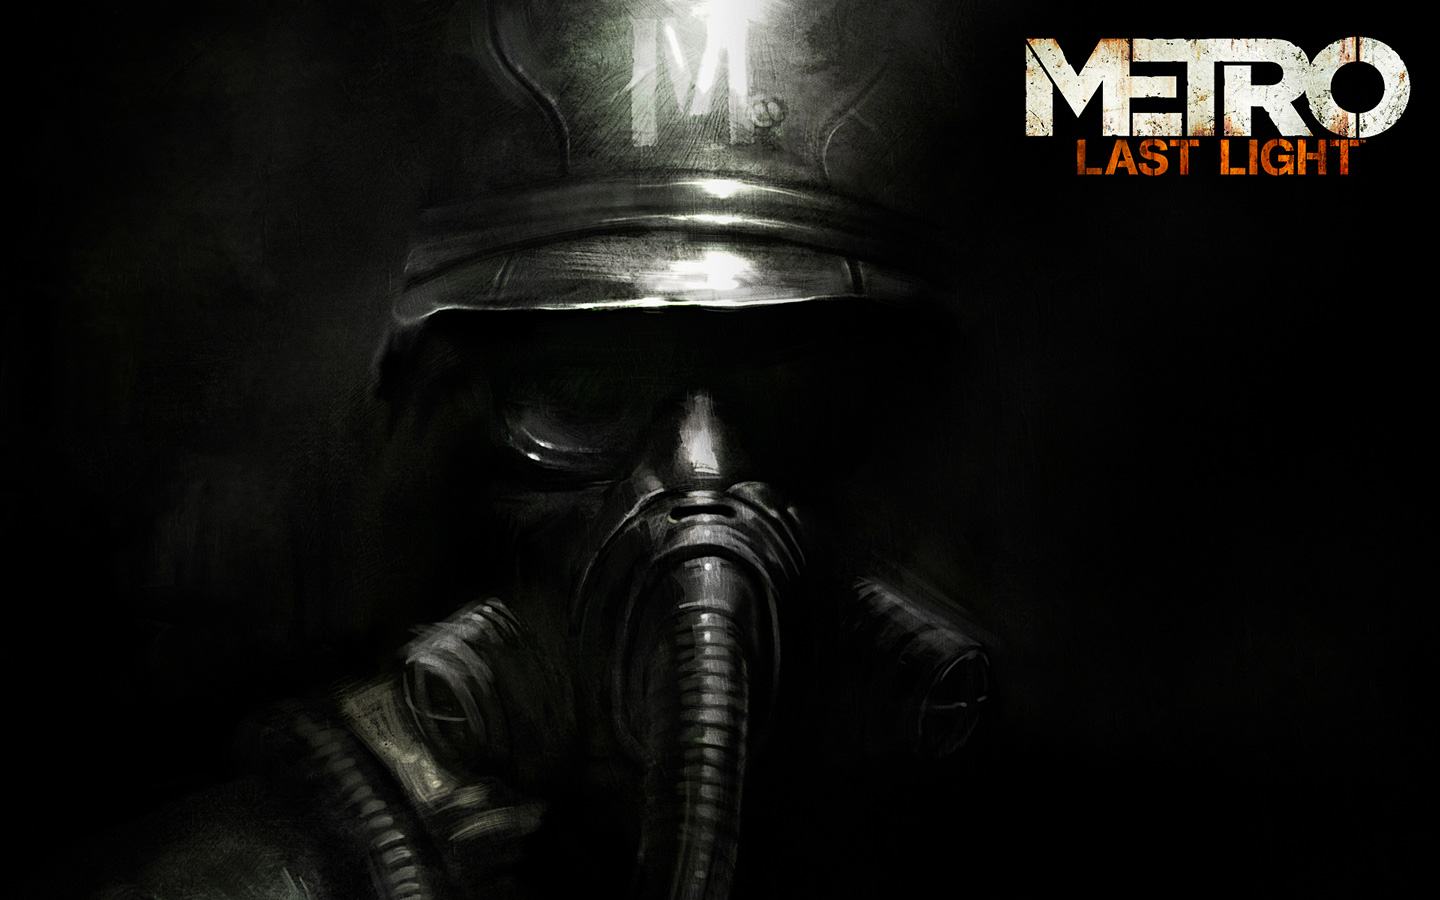 wallpapers hd wallpapers metro last light game 2013. Black Bedroom Furniture Sets. Home Design Ideas